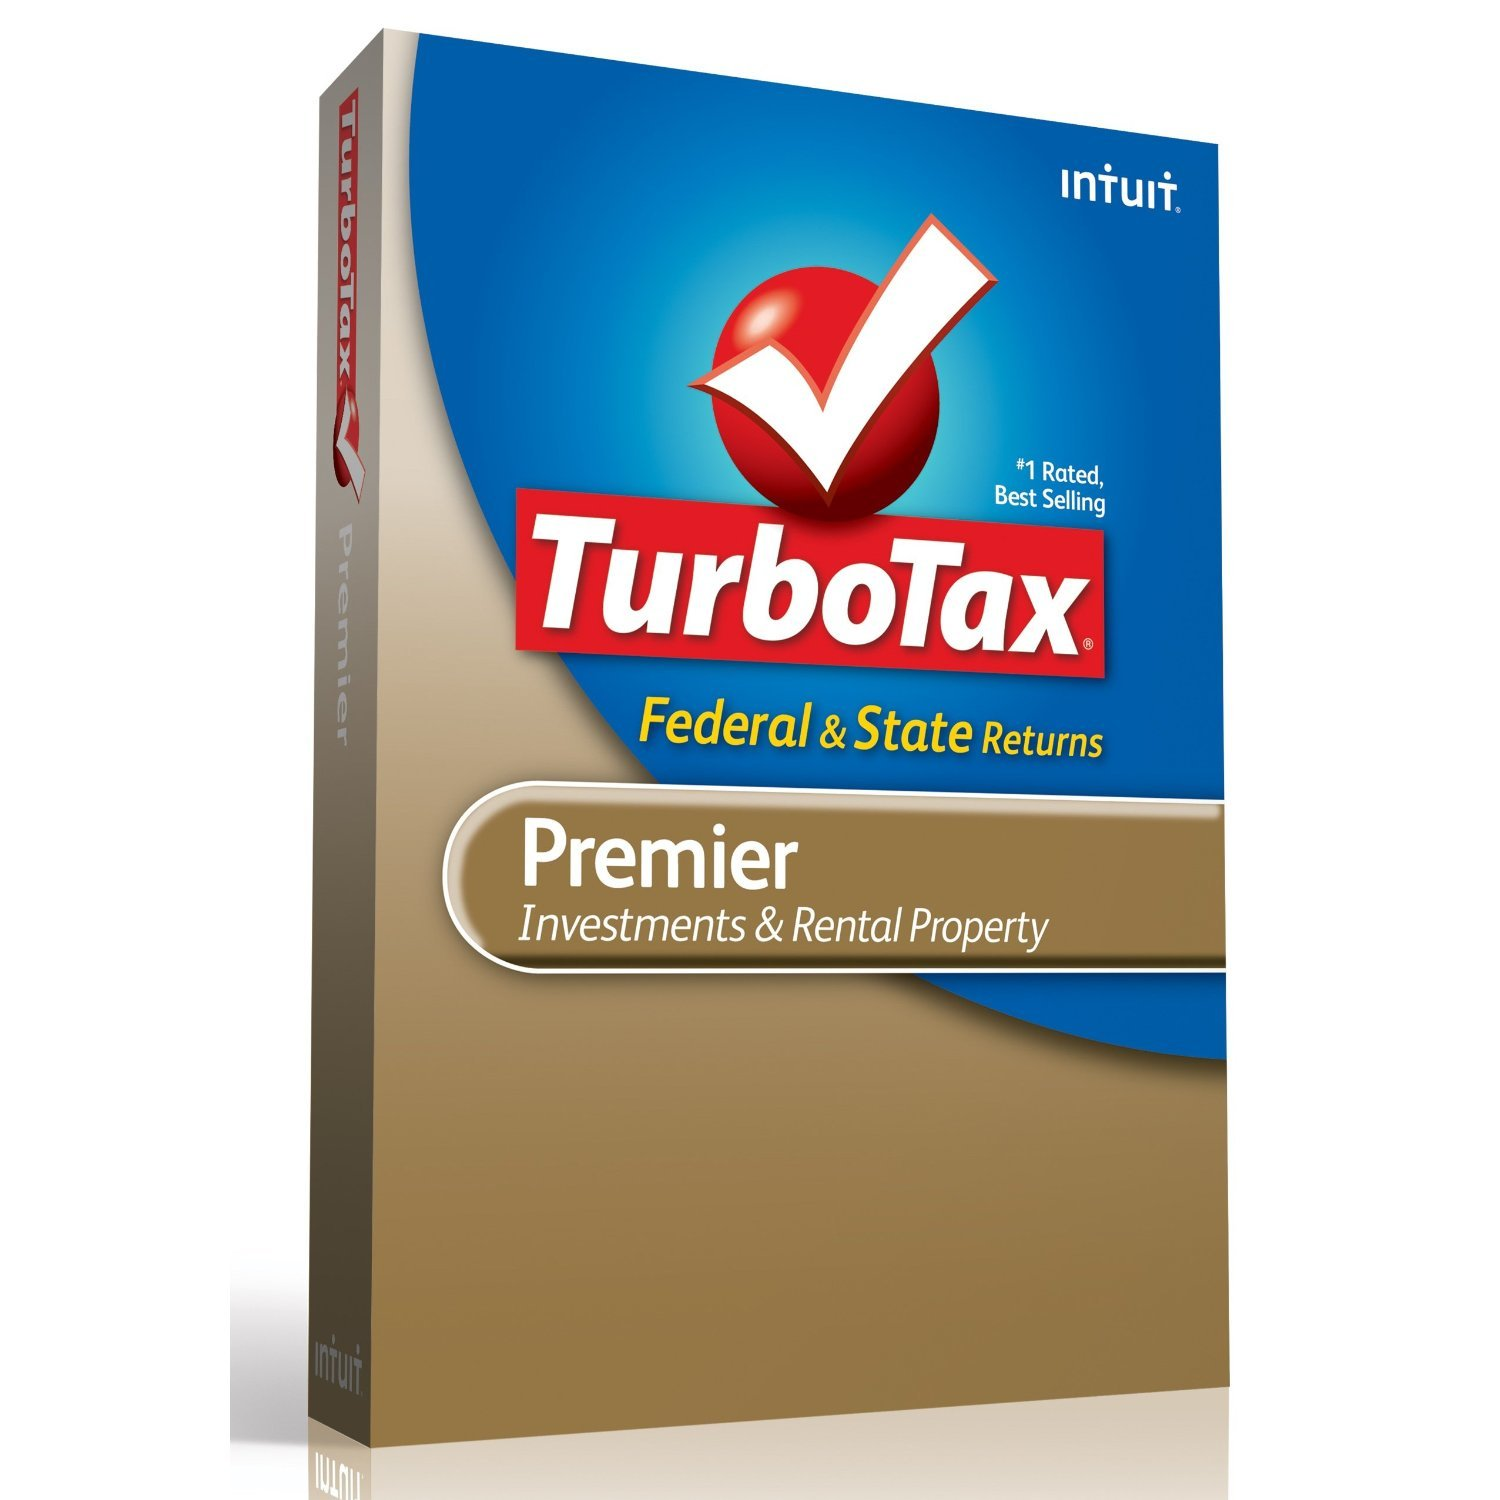 Amazon turbotax premier federal e file state 2012 old amazon turbotax premier federal e file state 2012 old version software falaconquin